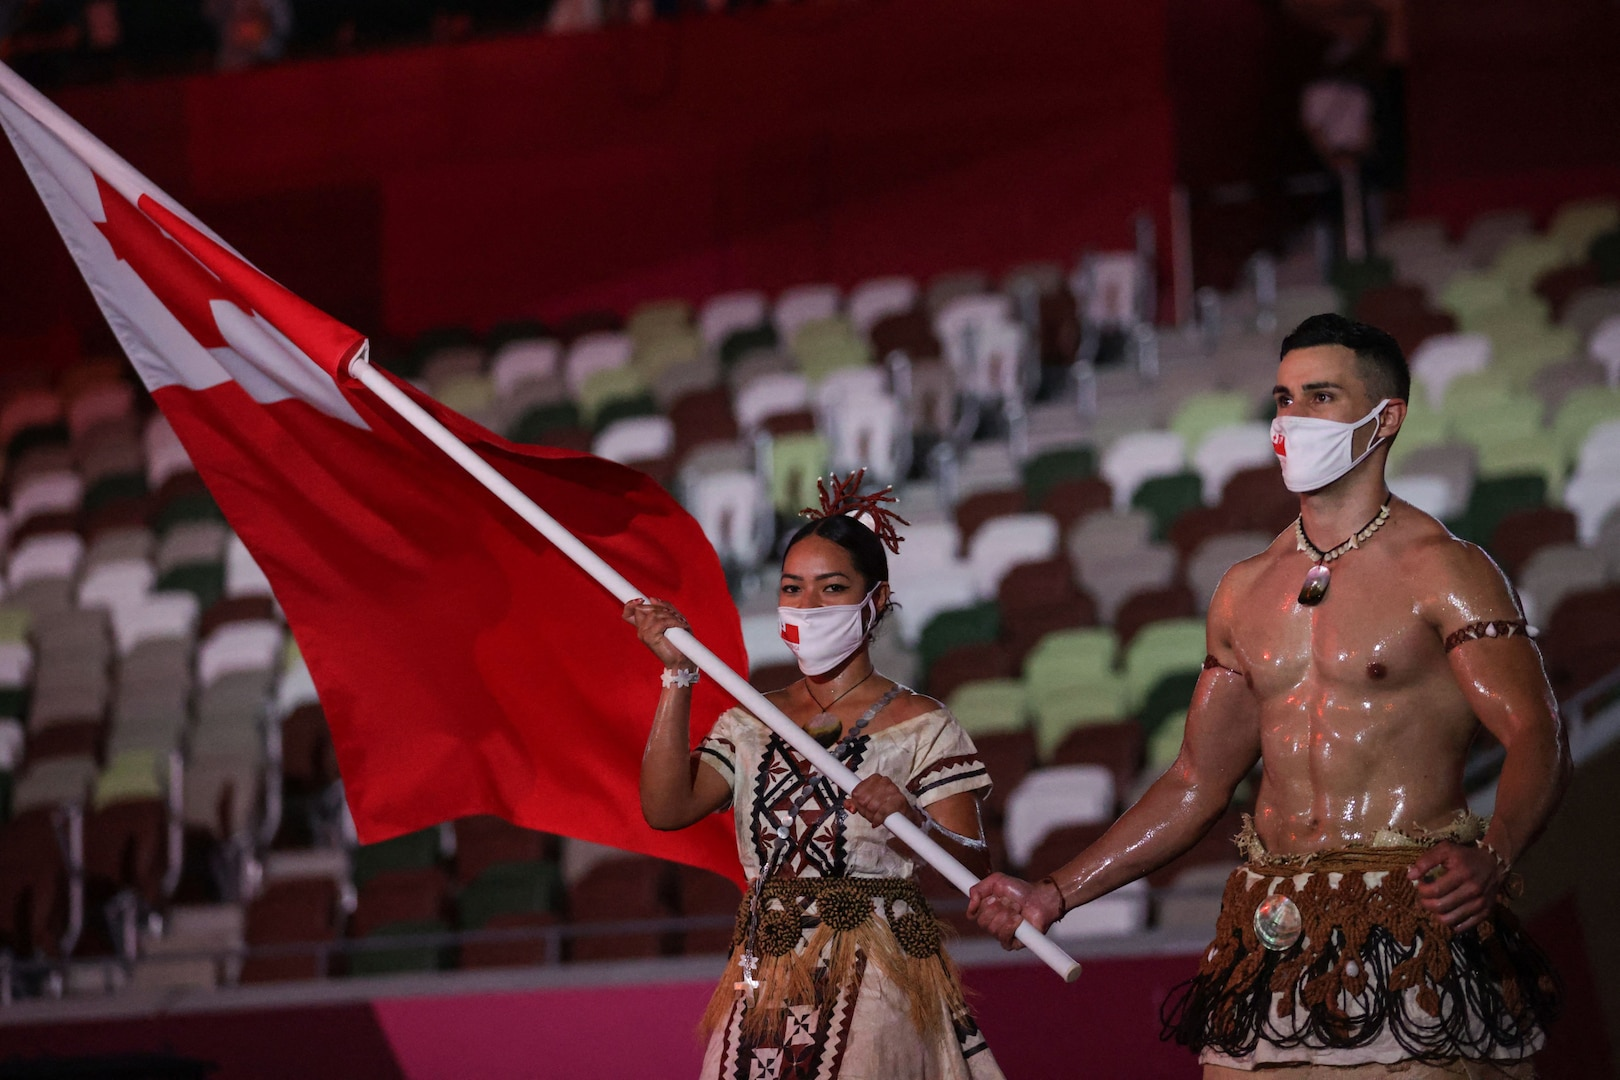 Tonga's flag bearers Malia Paseka (L) and Pita Taufatofua lead the delegation during the Tokyo 2020 Olympic Games opening ceremony's parade of athletes, at the Olympic Stadium in Tokyo on July 23, 2021.